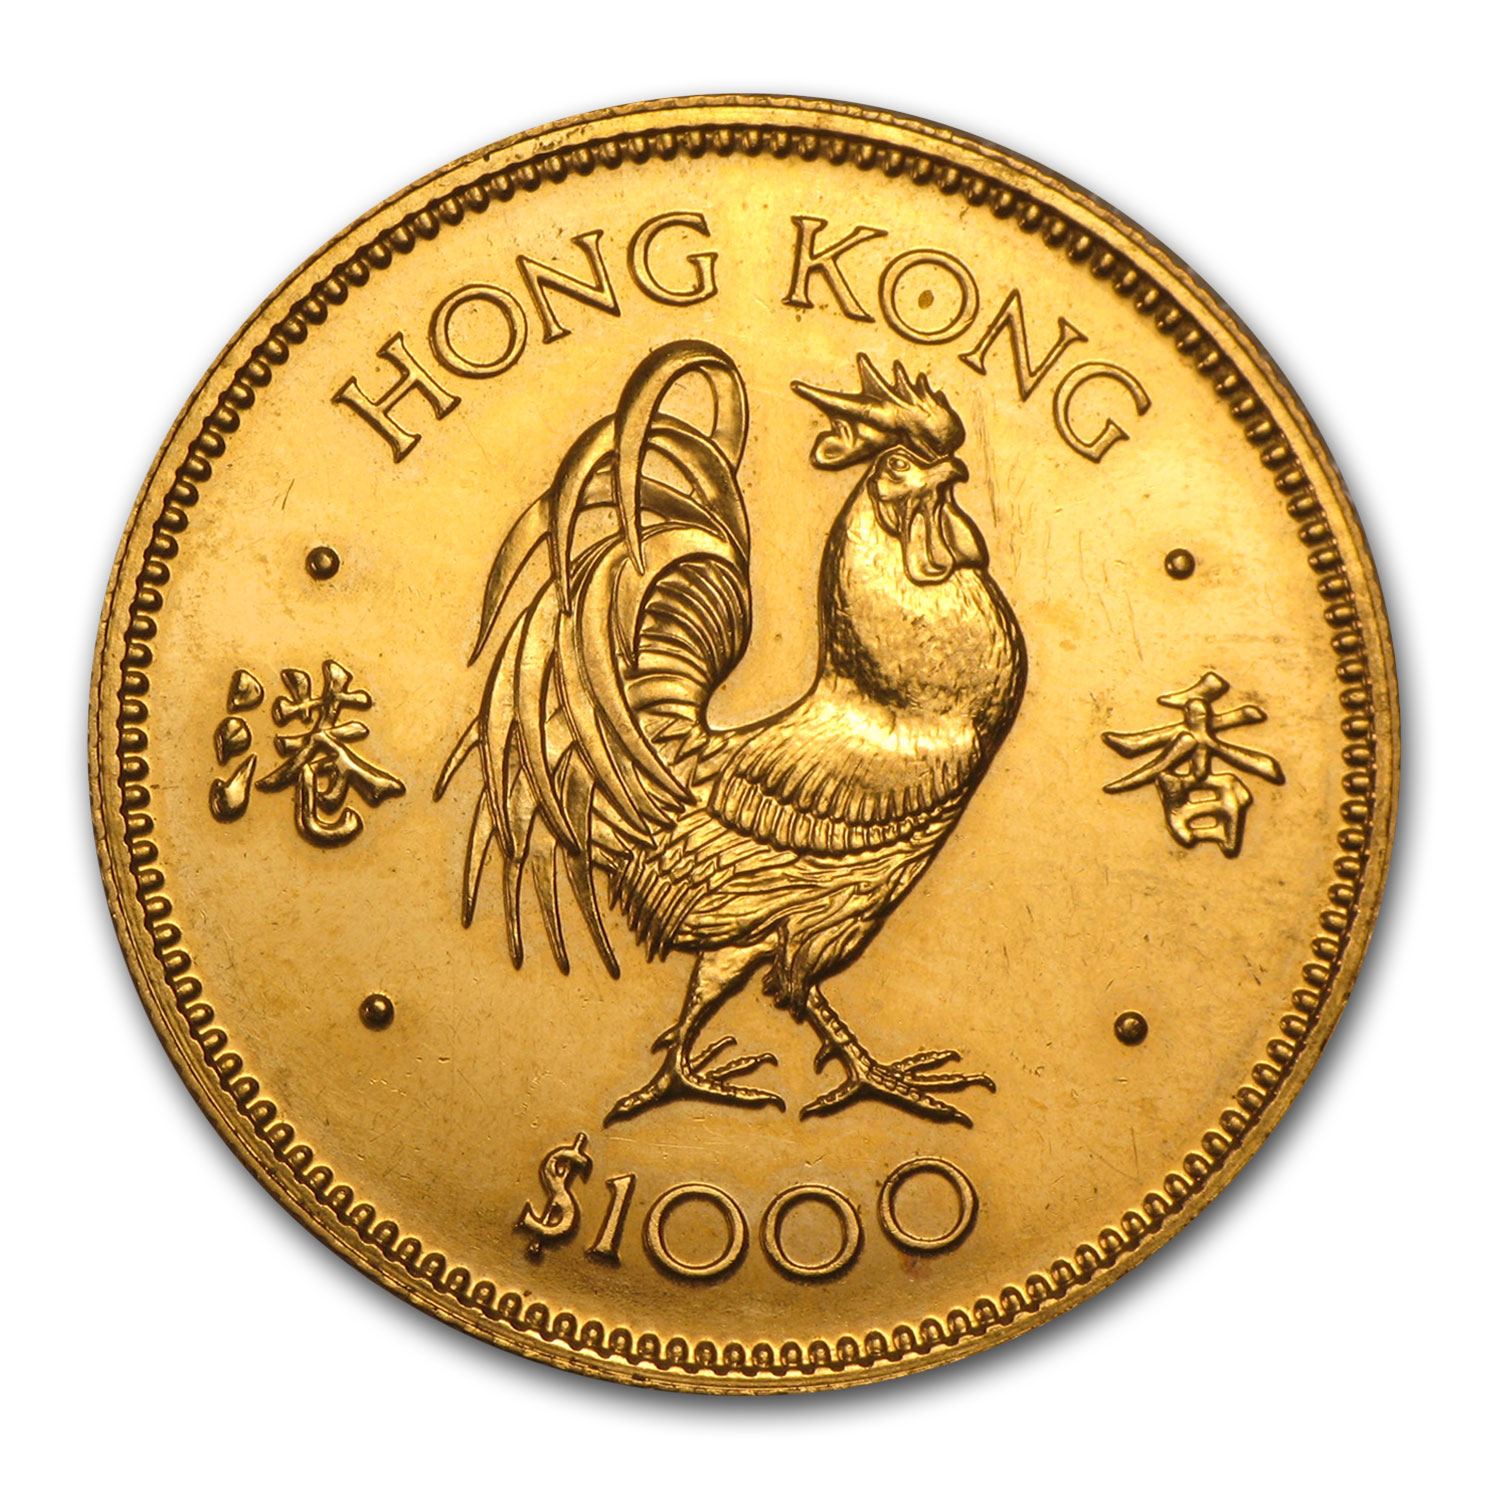 Hong Kong $1,000 Gold BU/Proof Details (Random)